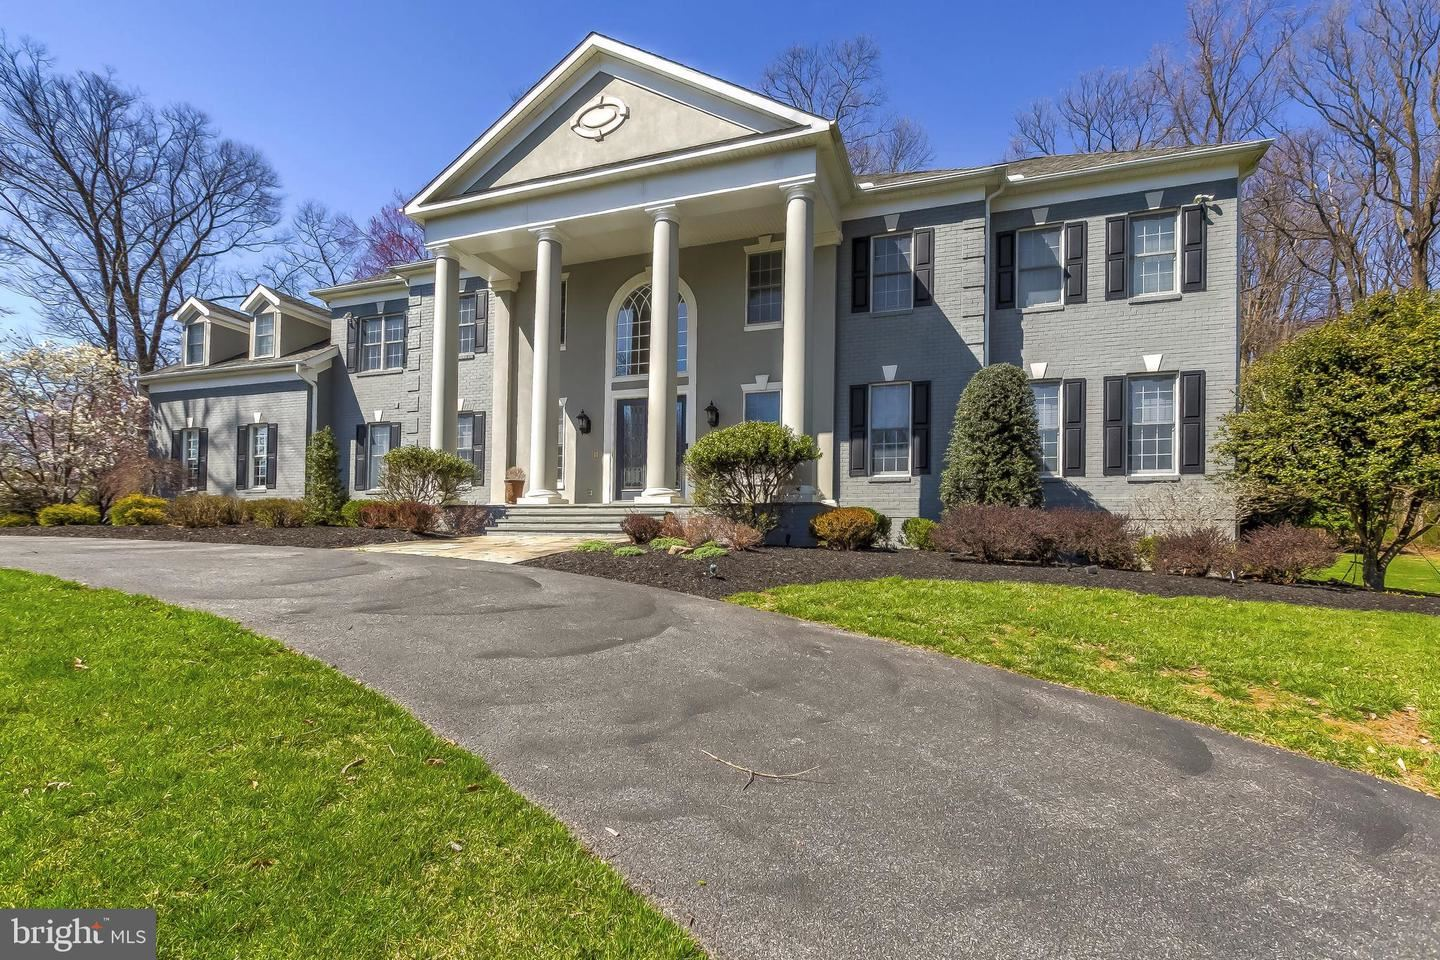 6 SPRING FOREST CT, Owings Mills, MD 21117 - MLS#: MDBC524200